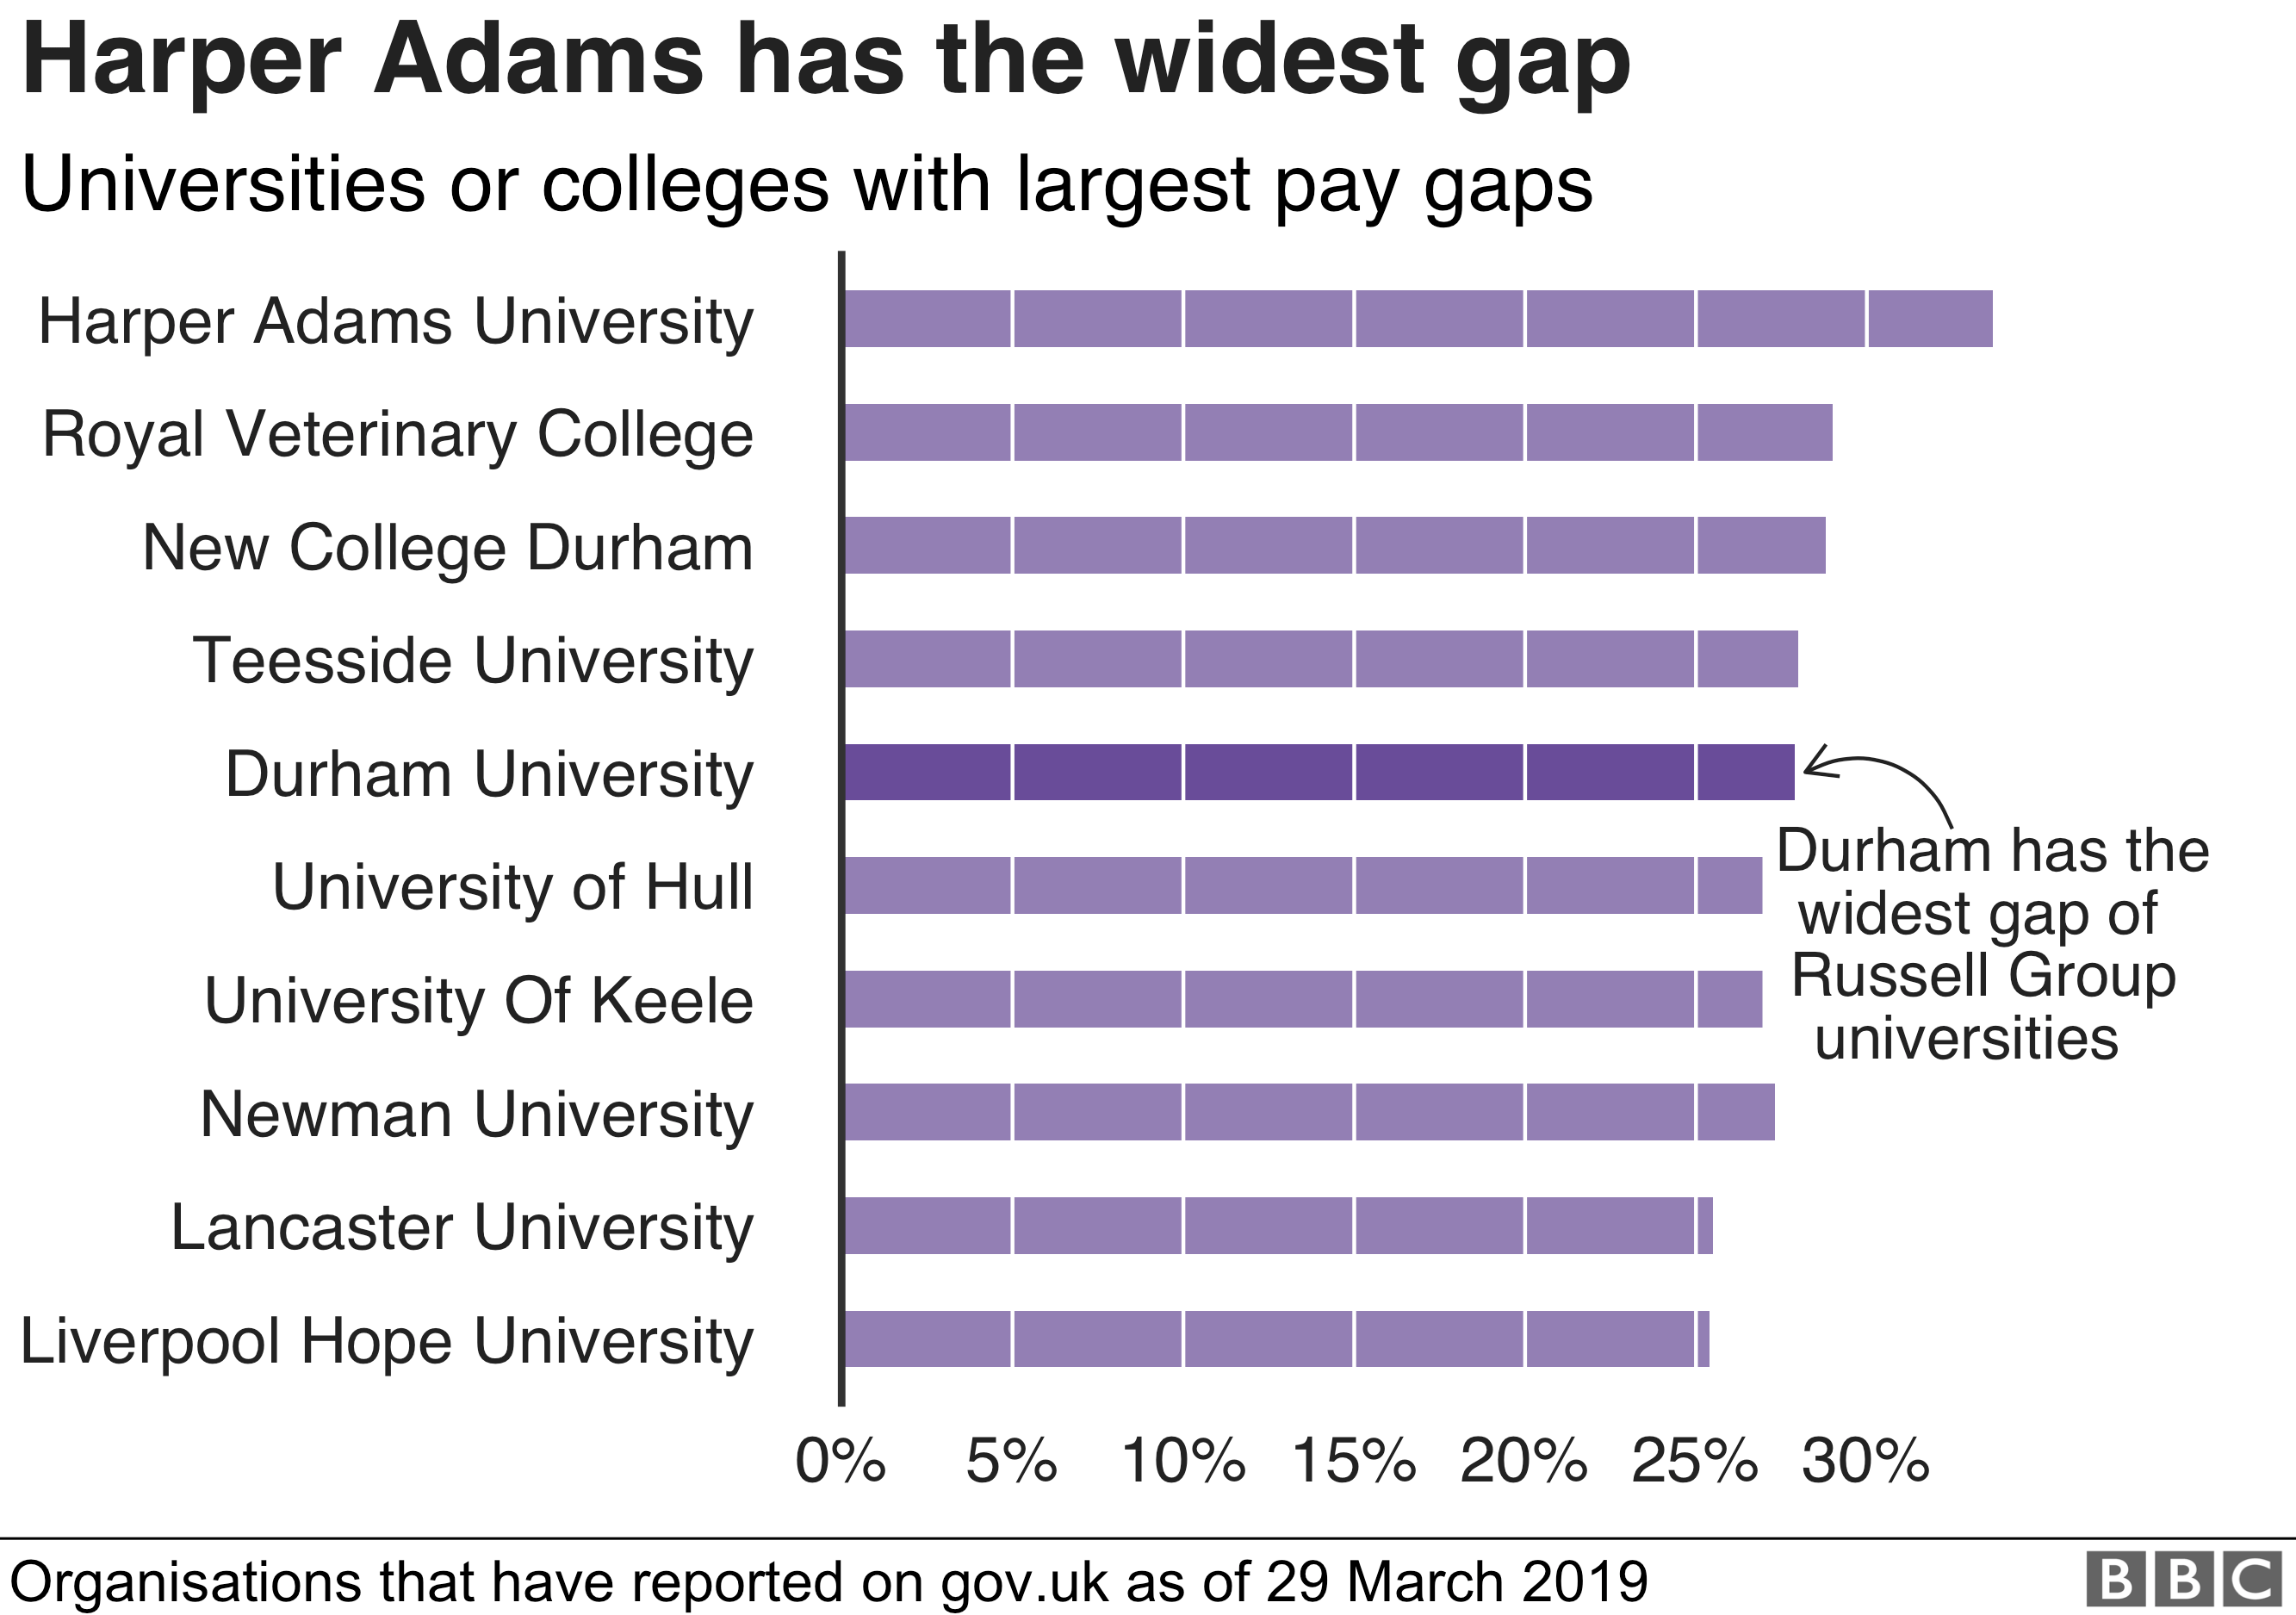 Chart showing that Harper Adams University has the widest pay gap